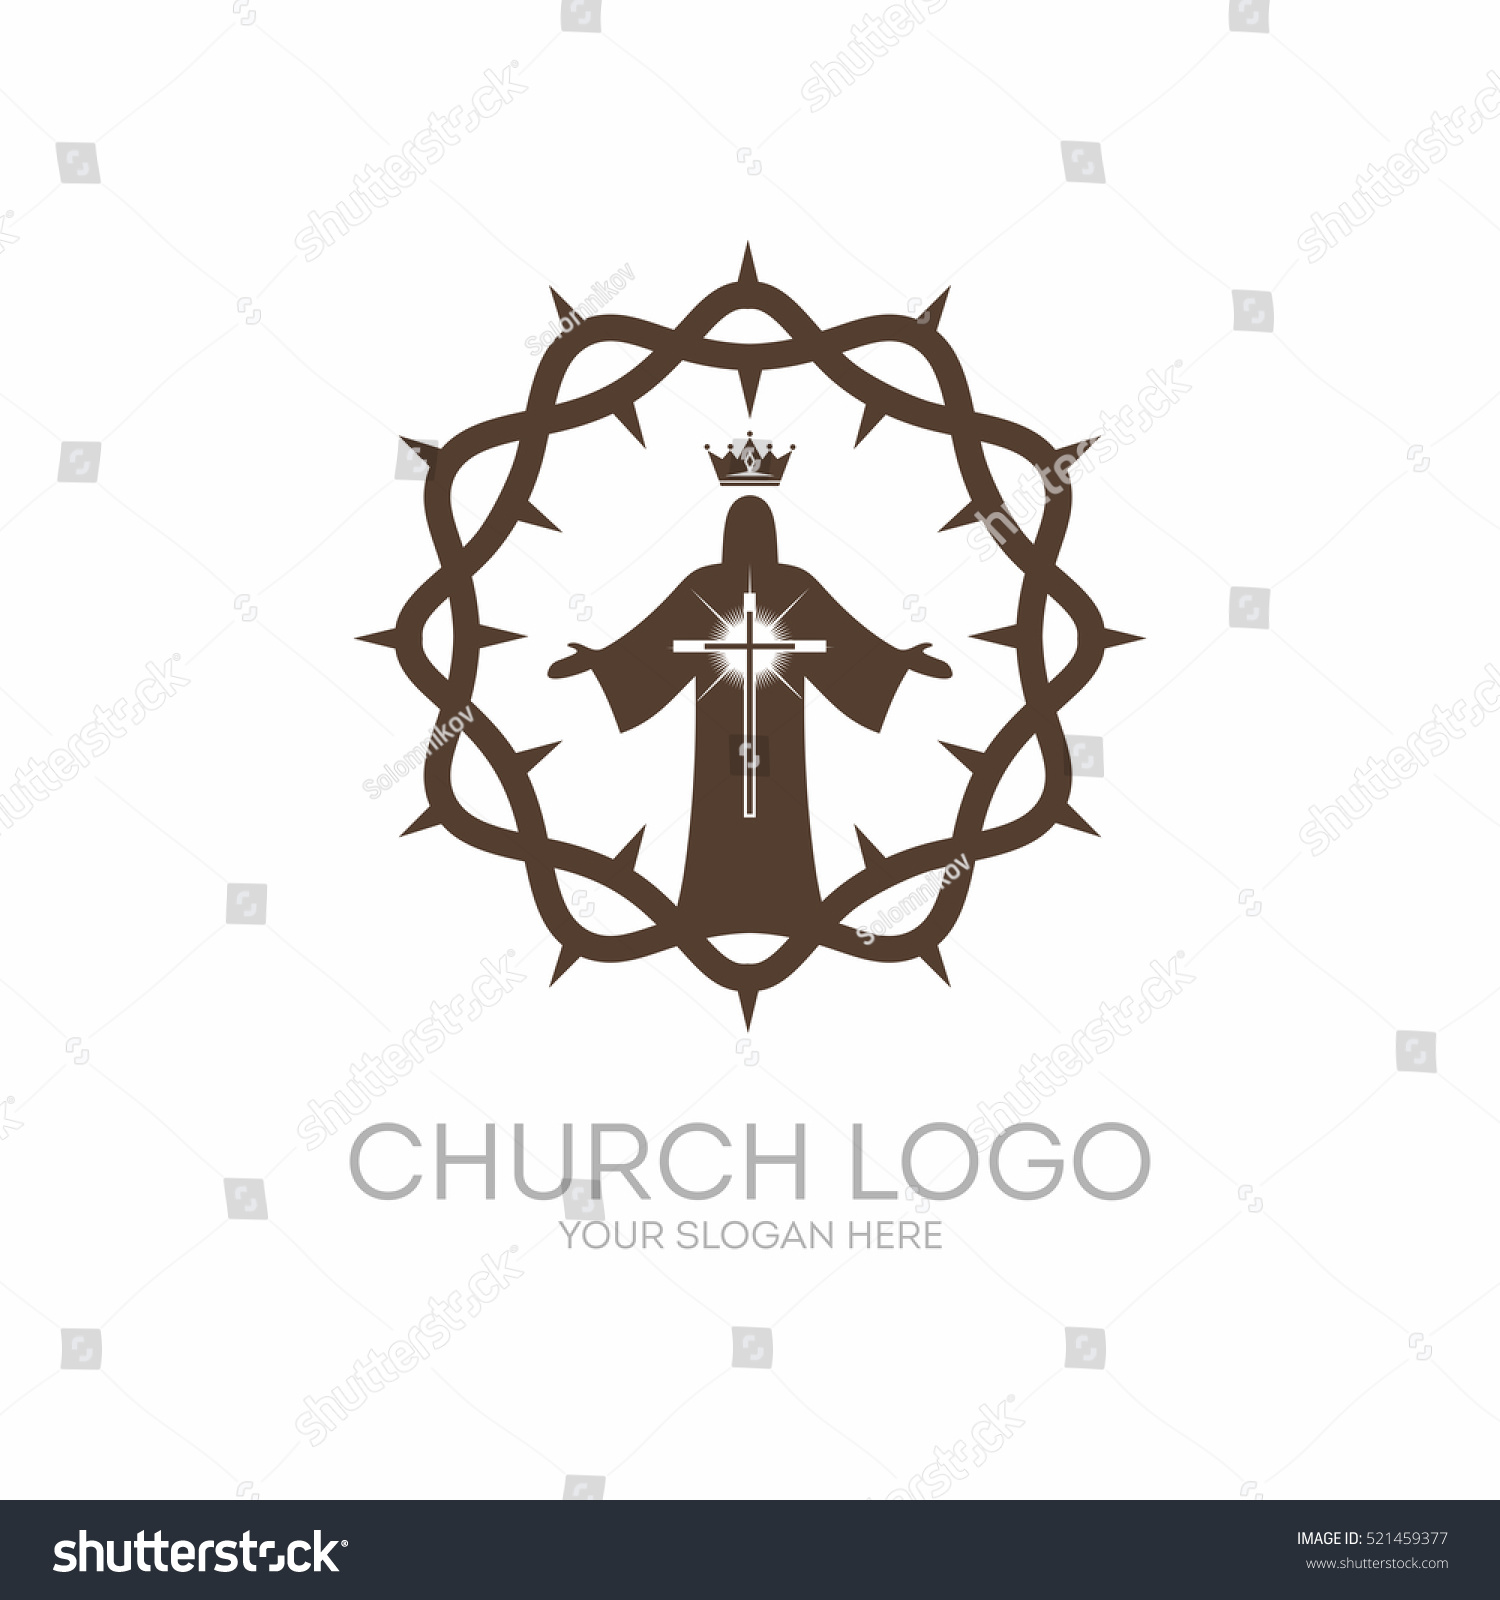 Church logo christian symbols crown thorns stock vector 521459377 christian symbols crown of thorns the savior and king jesus buycottarizona